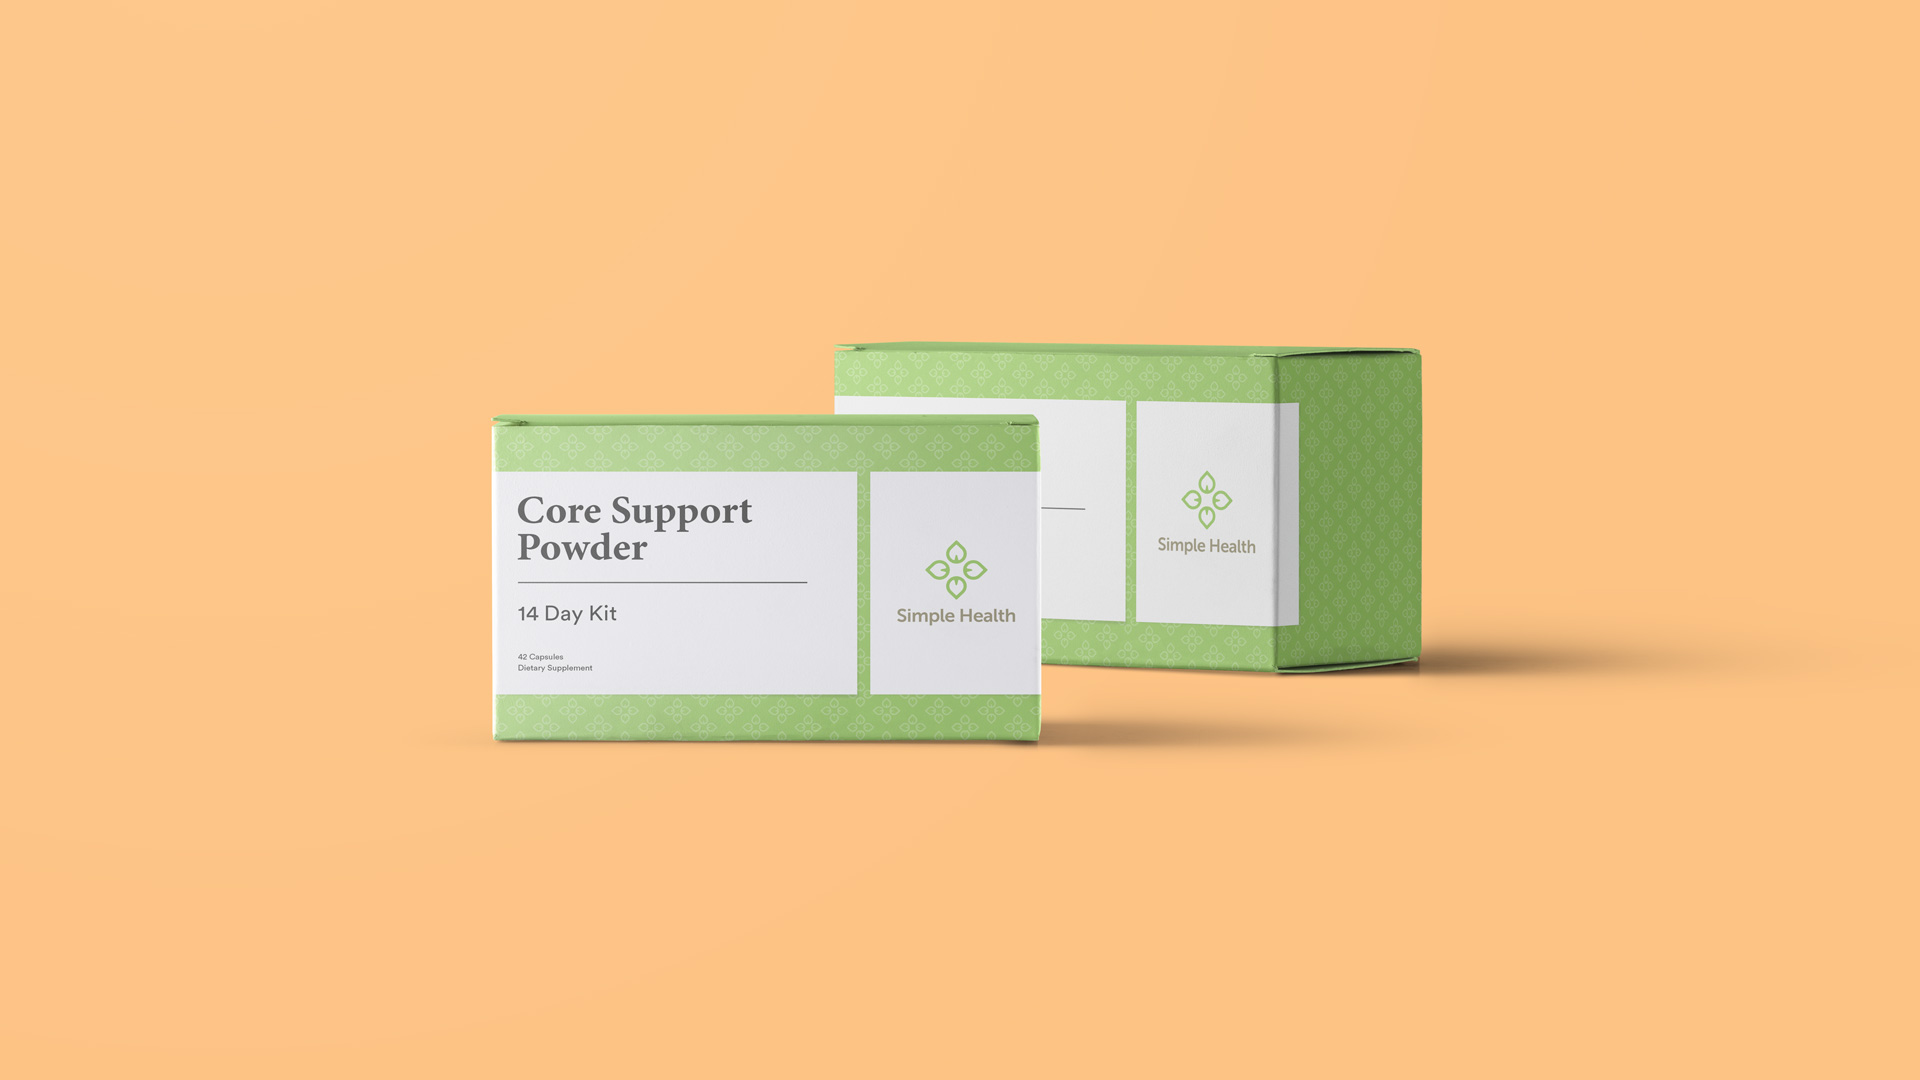 Simple Health Packaging Design - Boxes